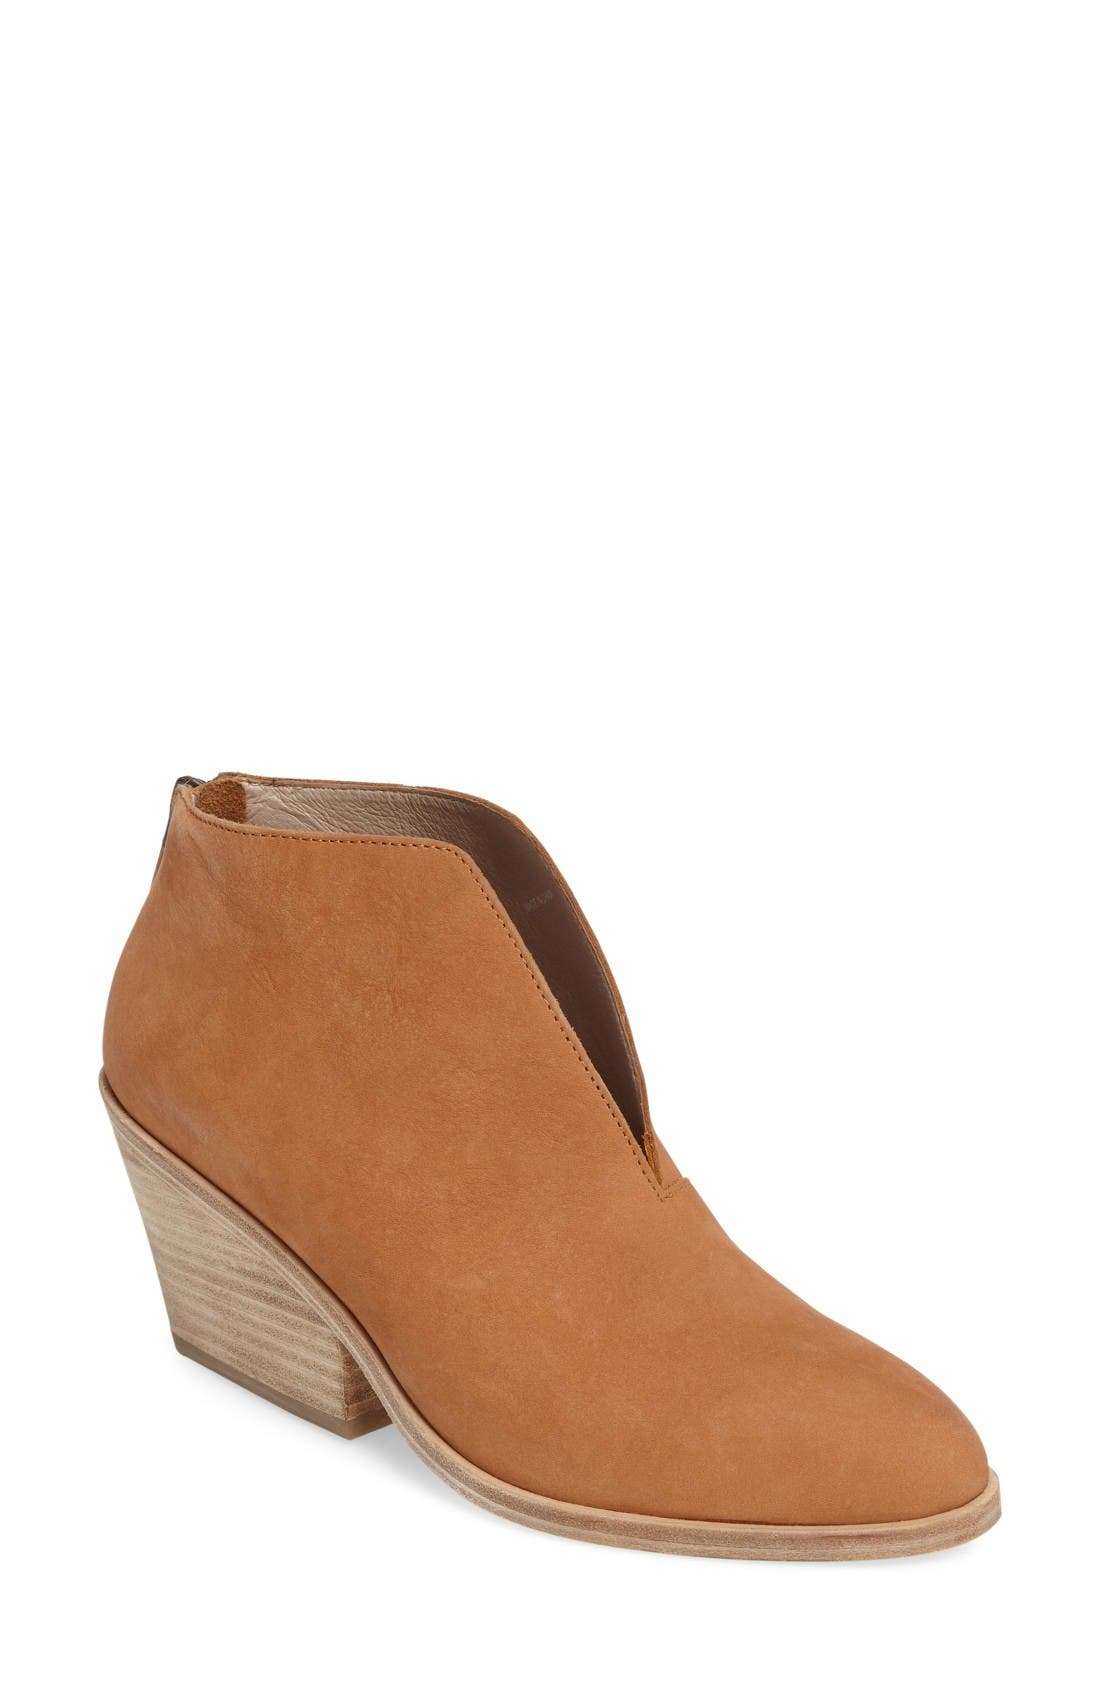 Alternate Image 1 Selected - Eileen Fisher Nelson Split Shaft Block Heel Bootie (Women)